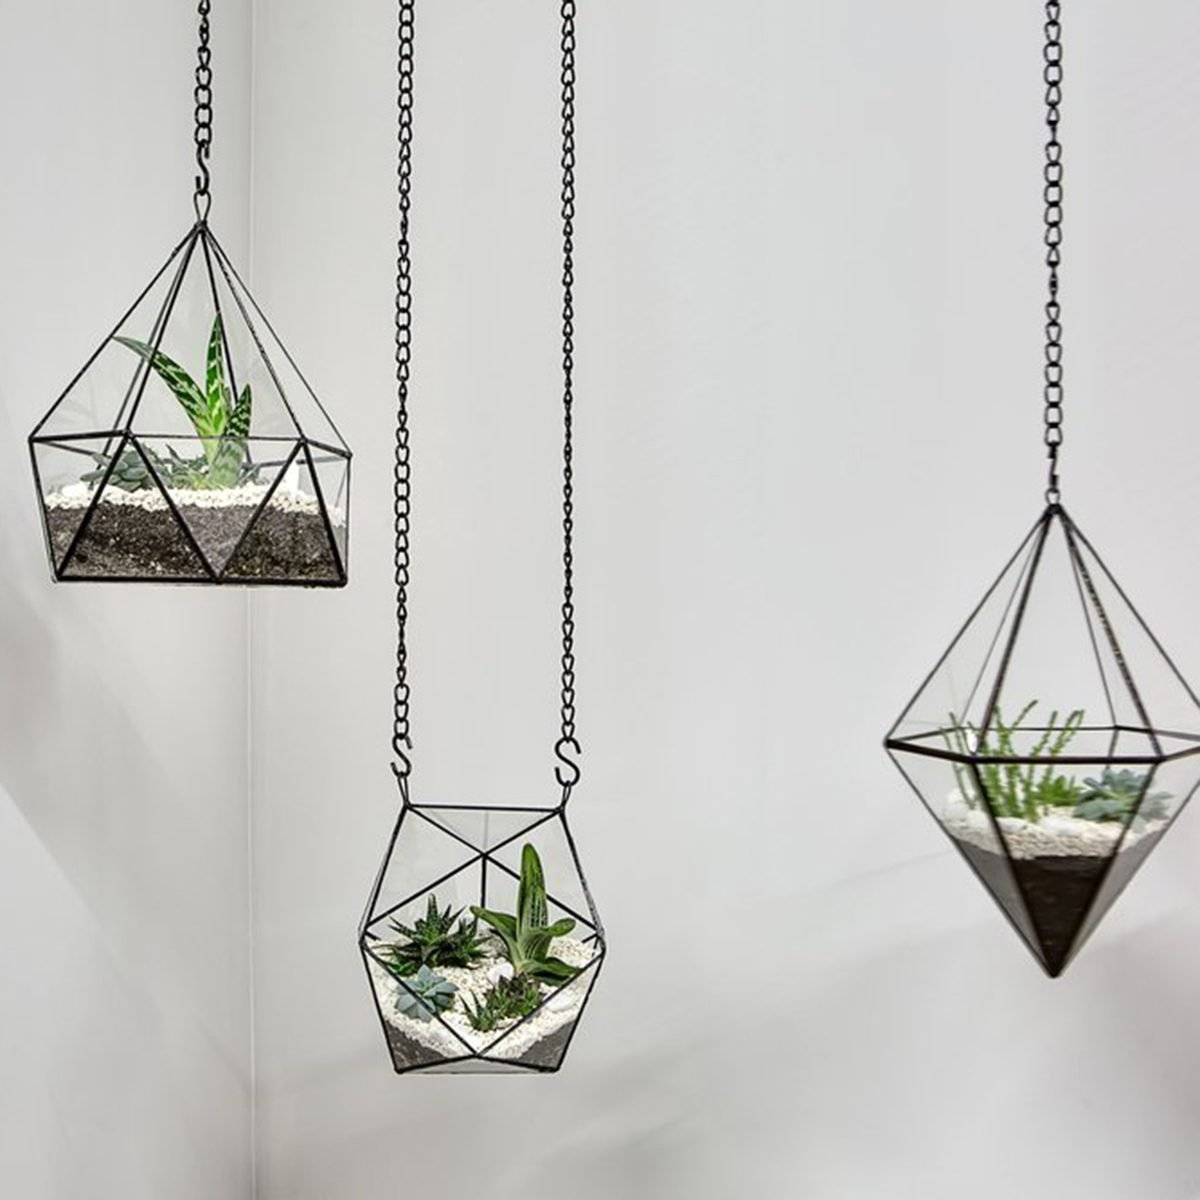 Hanging glass planters